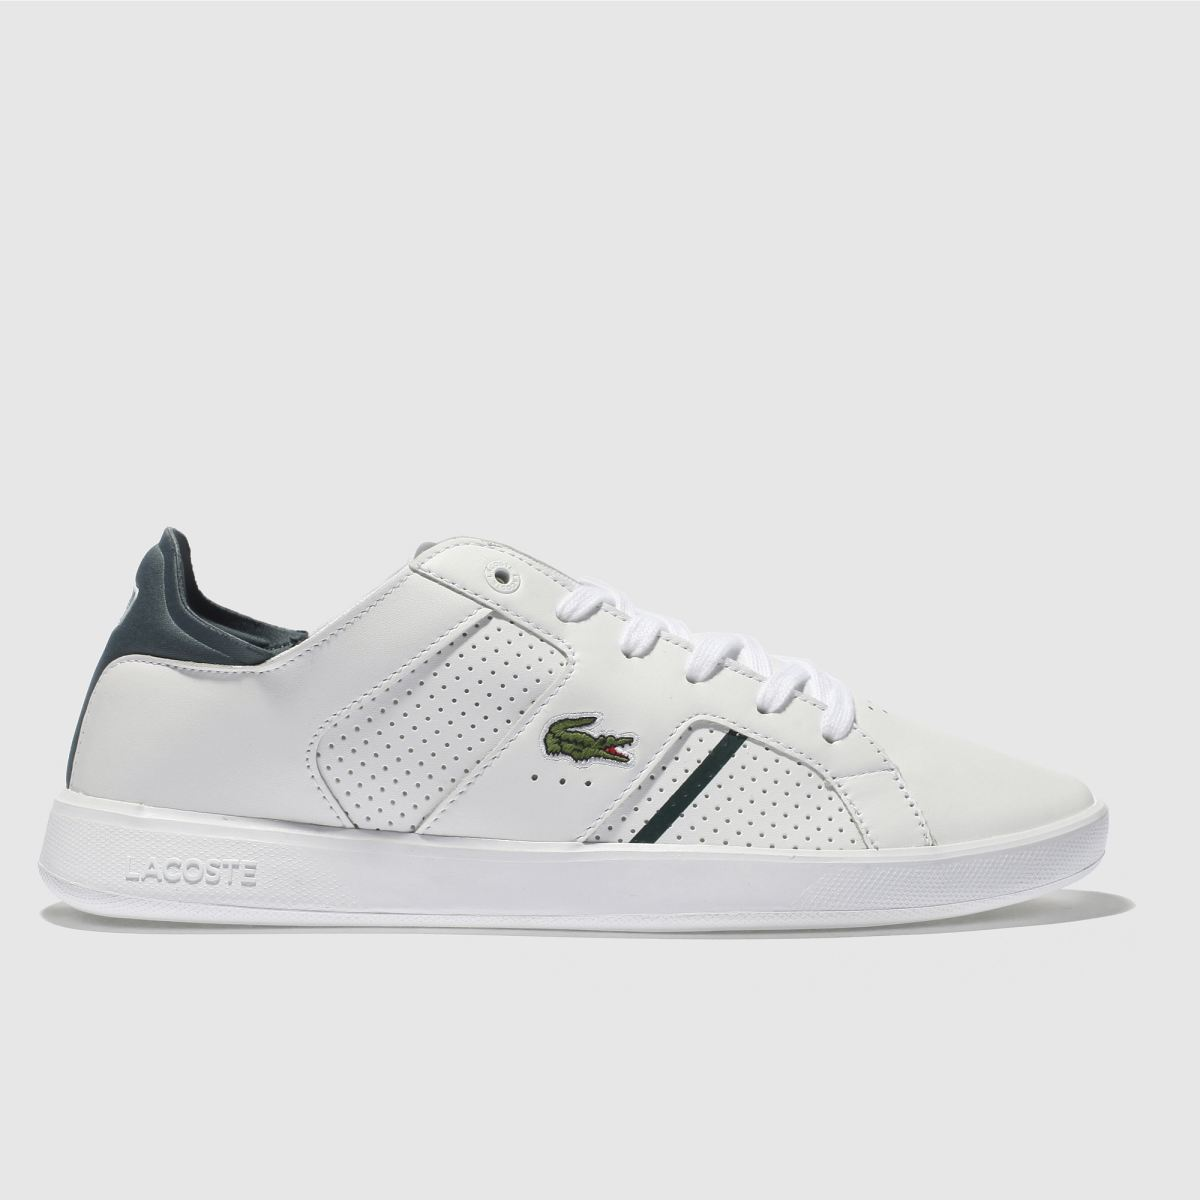 Lacoste White & Green Novas Ct Trainers